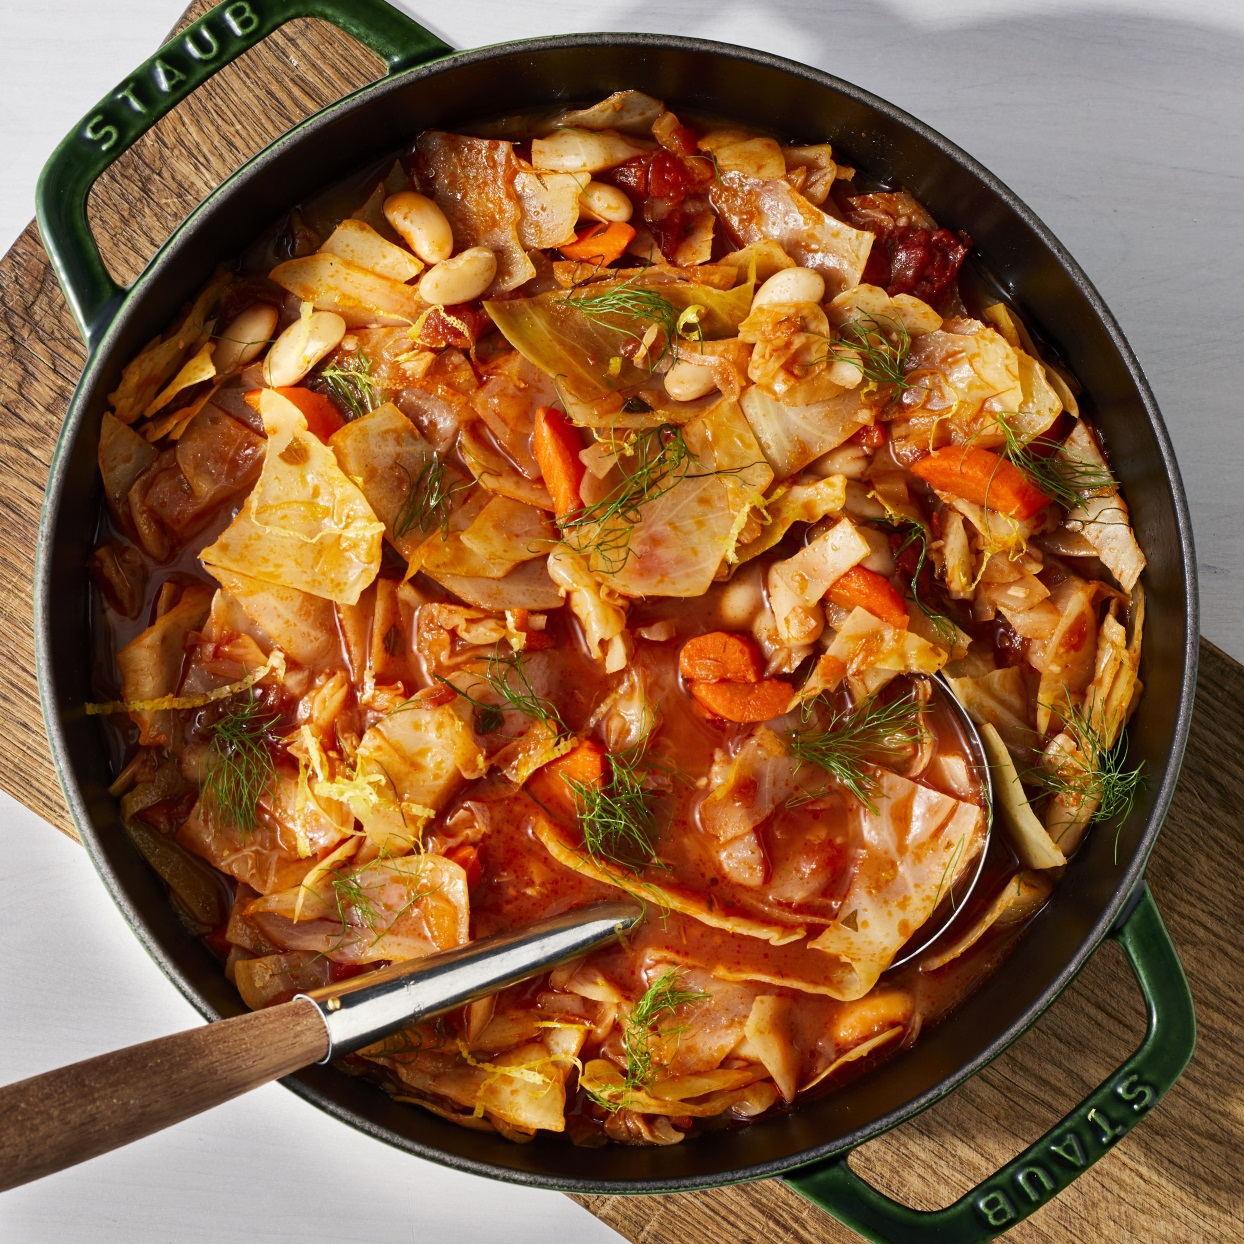 Mediterranean Cabbage Soup Trusted Brands